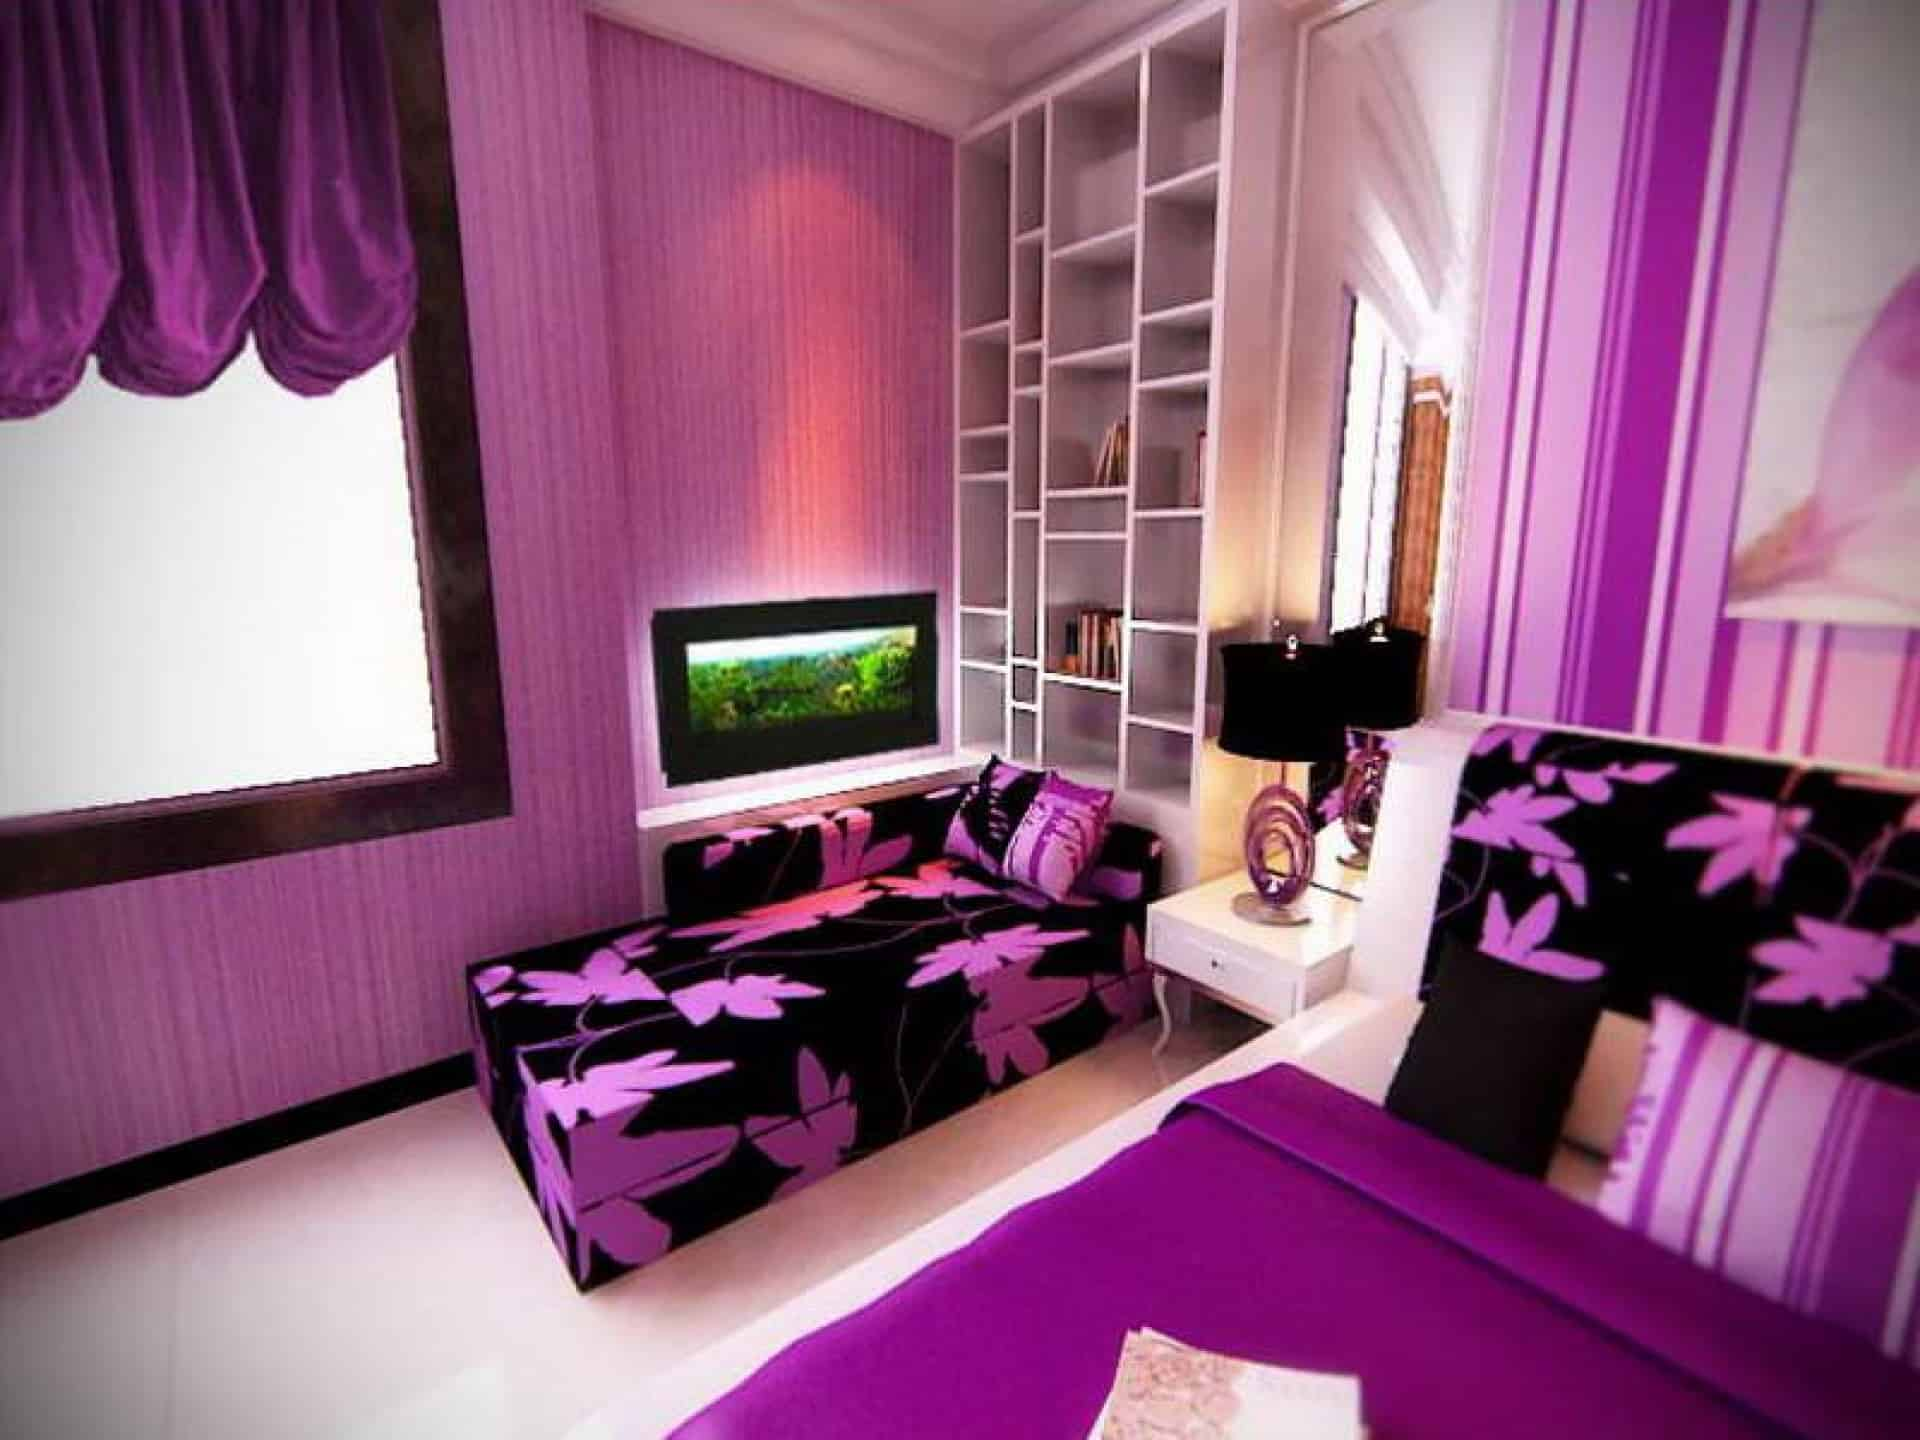 home decor trends 2017 purple teen room house interior purple home decor stellar interior design with home